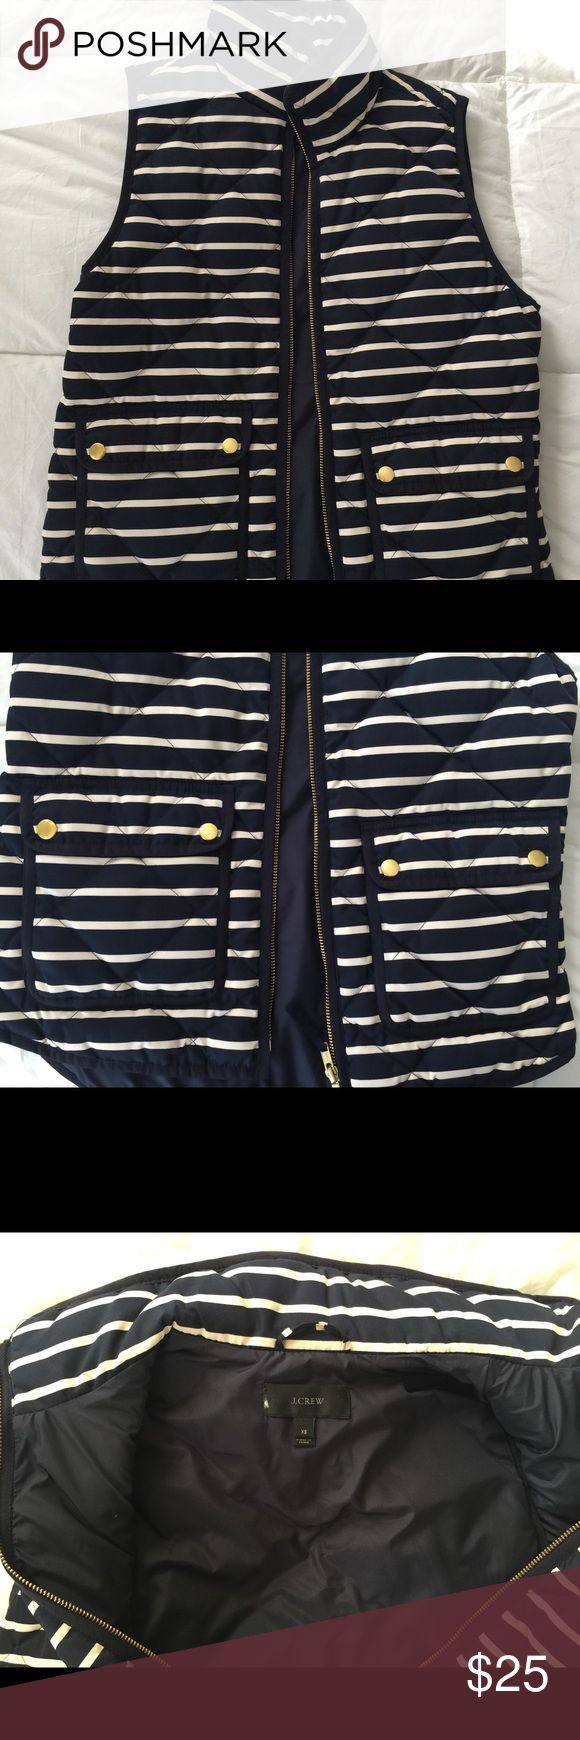 Navy sailor stripe vest J.Crew Bought outlet but never worn maybe once. In perfect condition size XS. Navy and white stripe no discoloration still as vibrant as day 1 J. Crew Jackets & Coats Vests